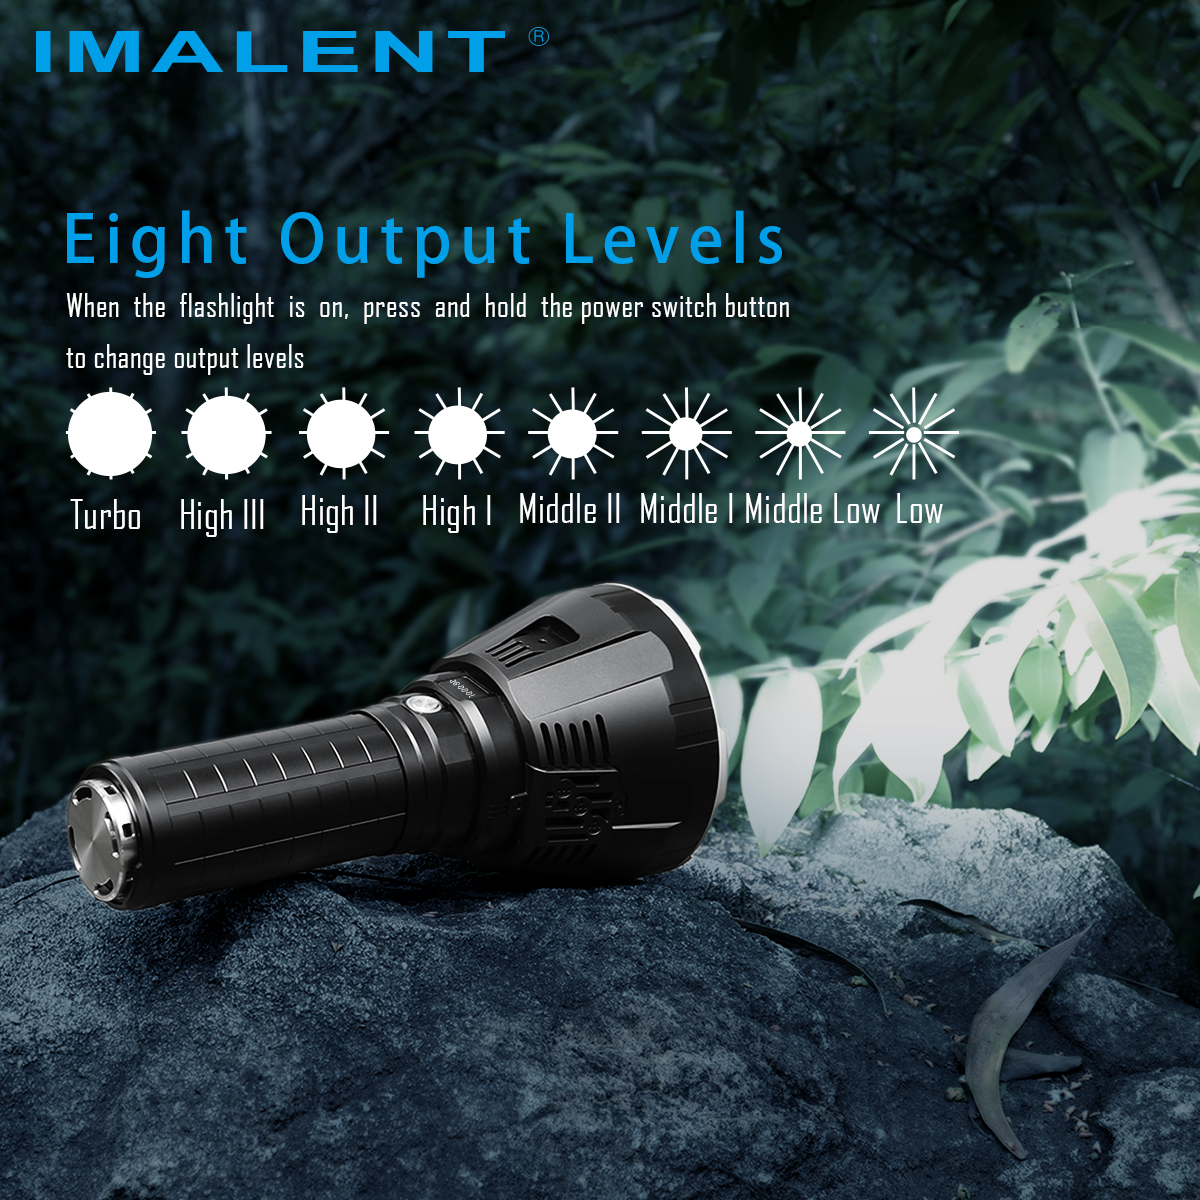 Купить с кэшбэком IMALENT R90TS LED Flashlight CREE XHP35 HI LEDs 36000LM High Power Flashlight with OLED Display  for Search and Rescue